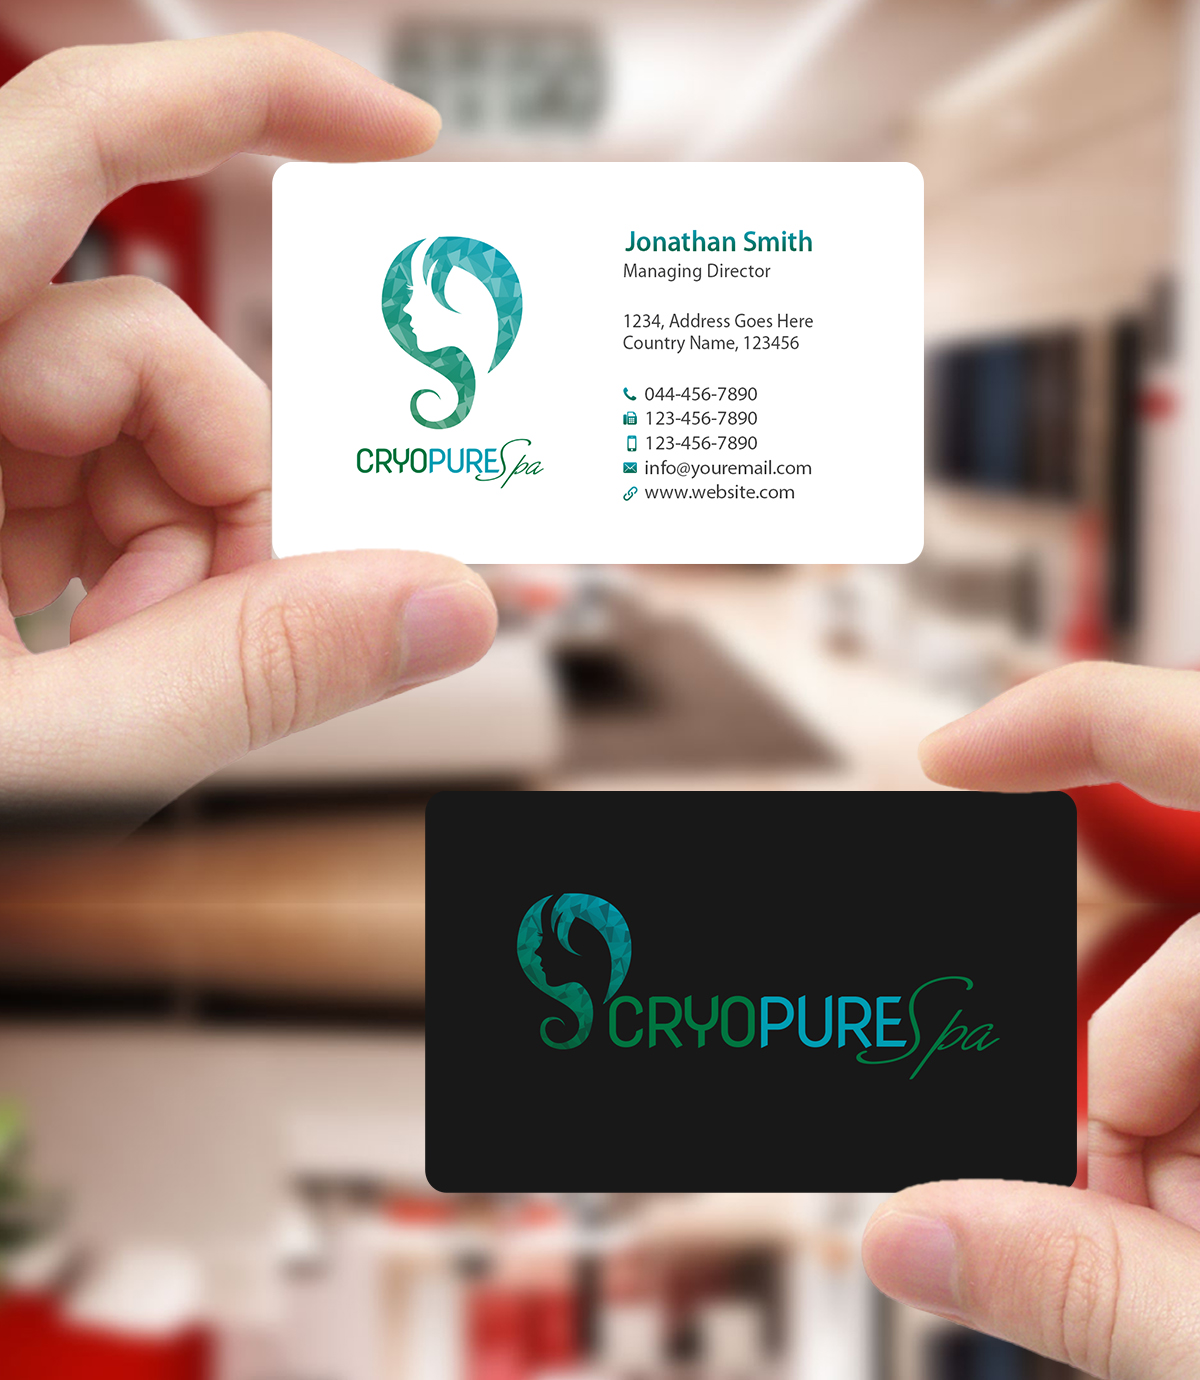 Elegant playful business business card design for cryopure spa business card design by creations box 2015 for cryopure spa llc design reheart Choice Image